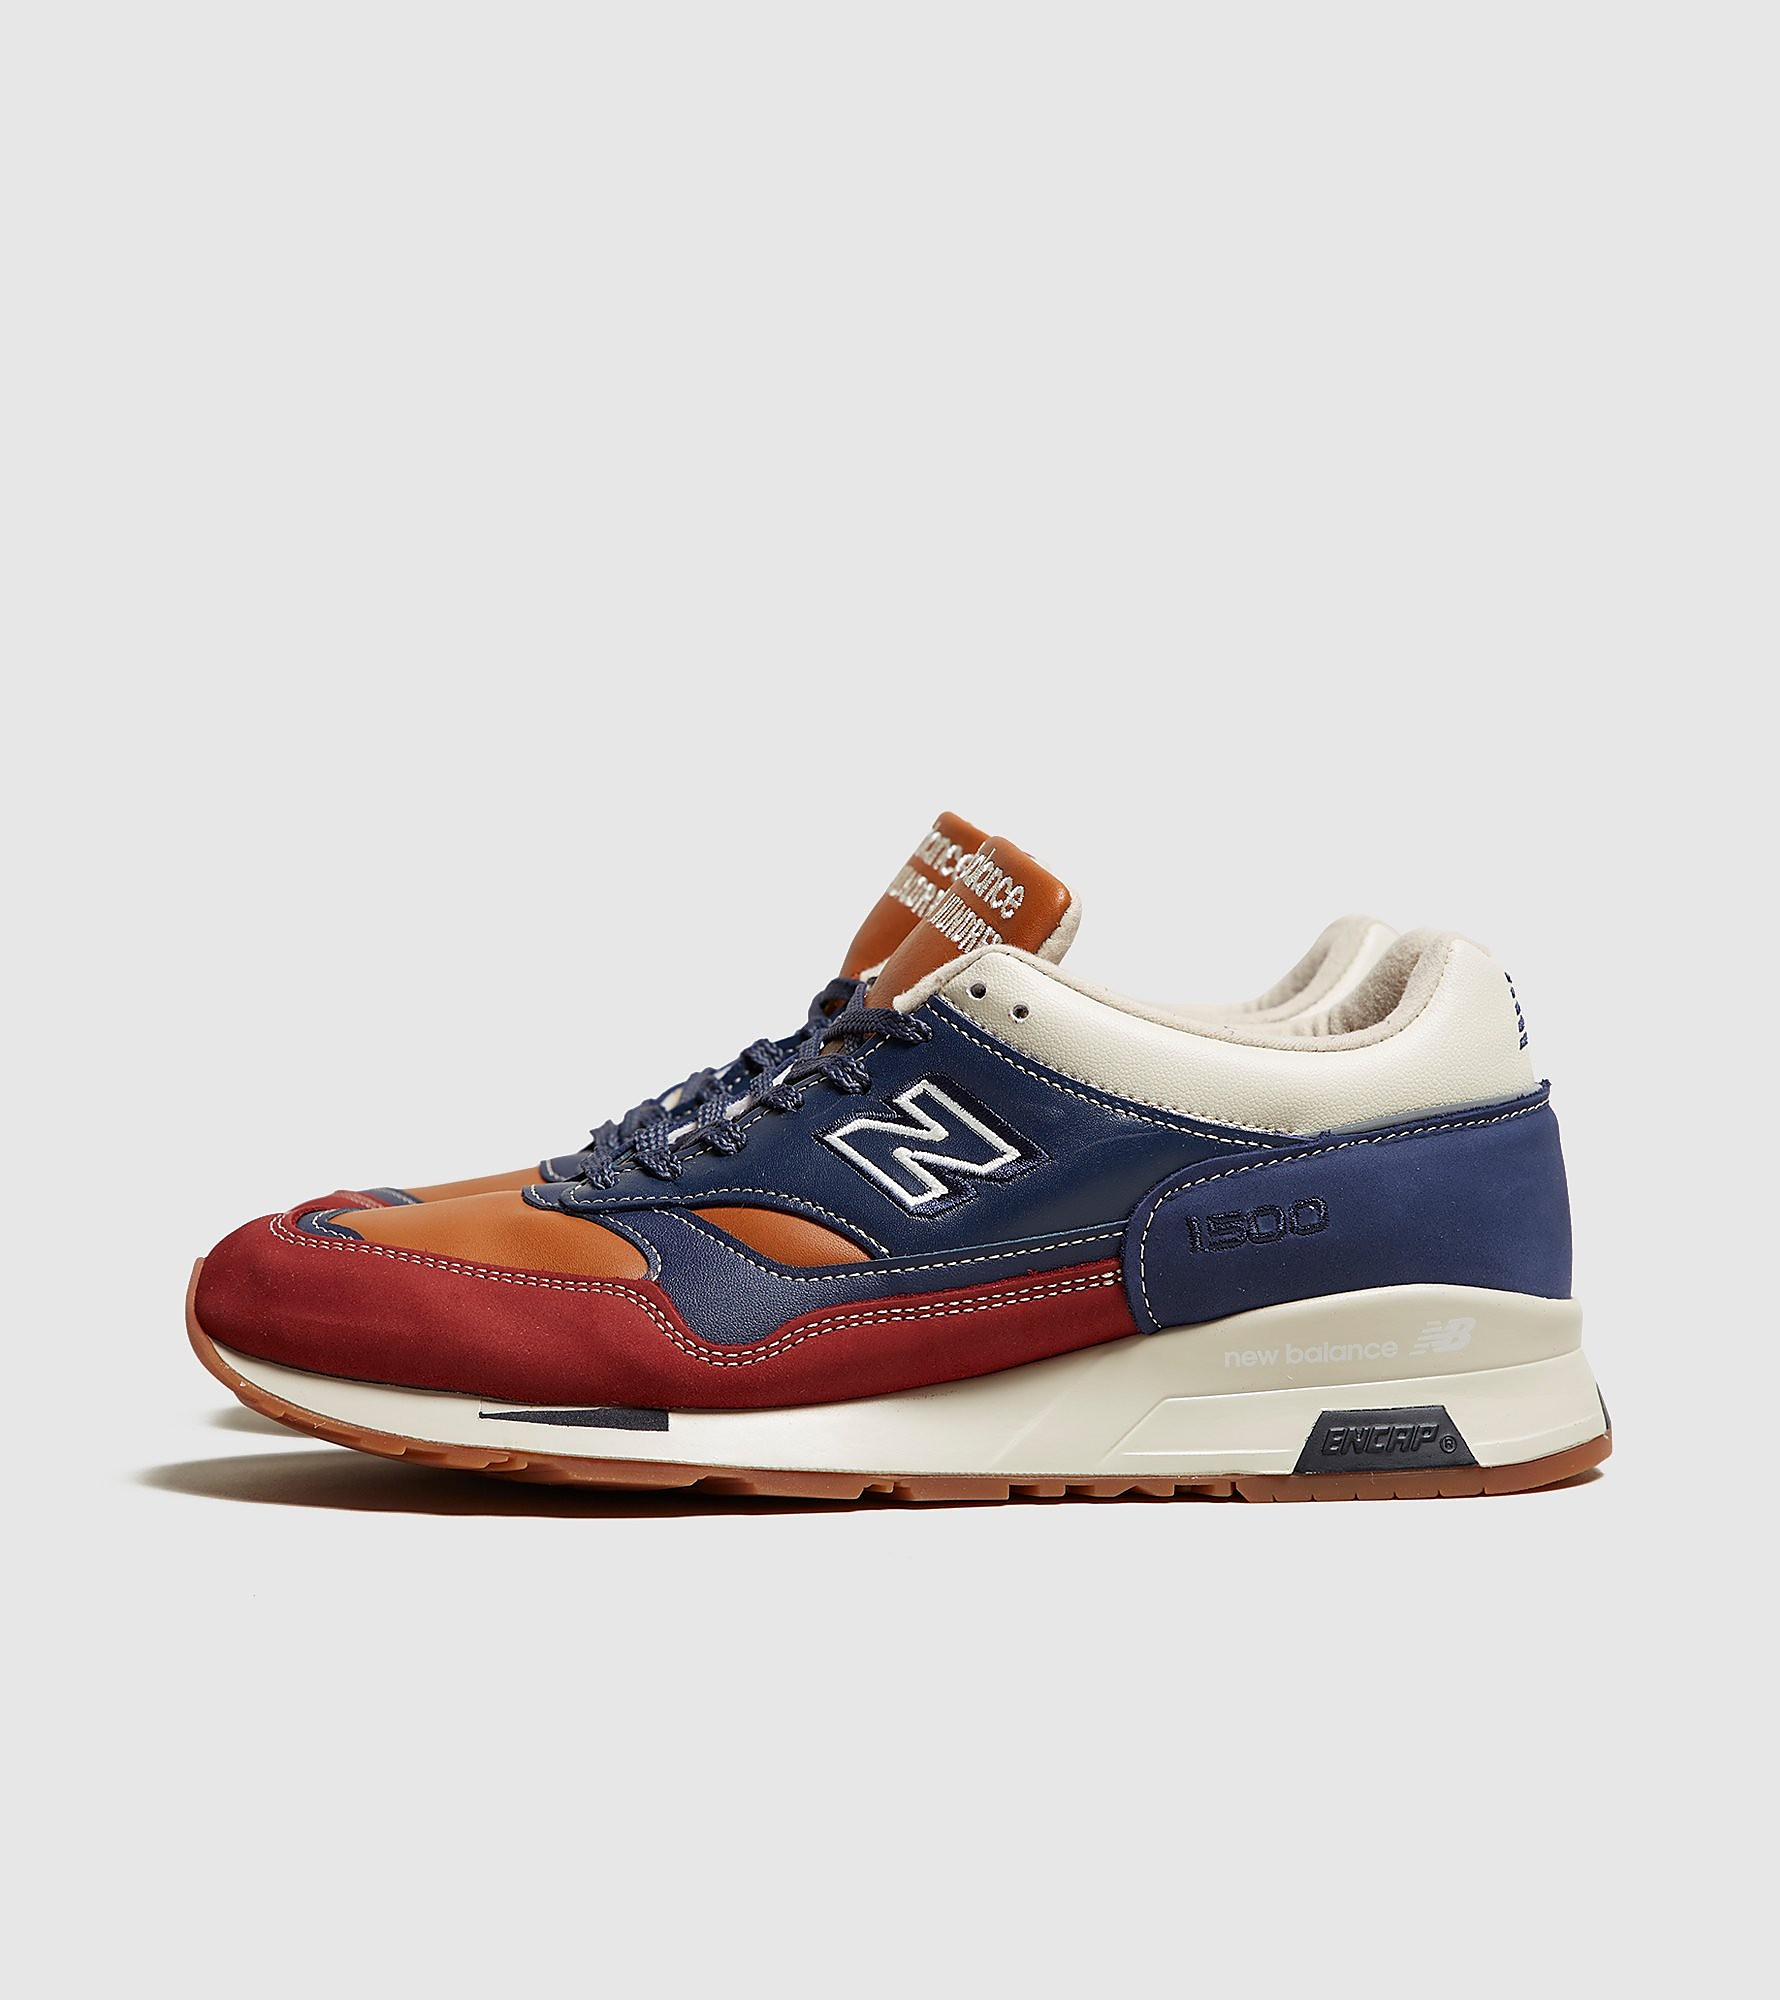 New Balance M1500MGC - Made in England